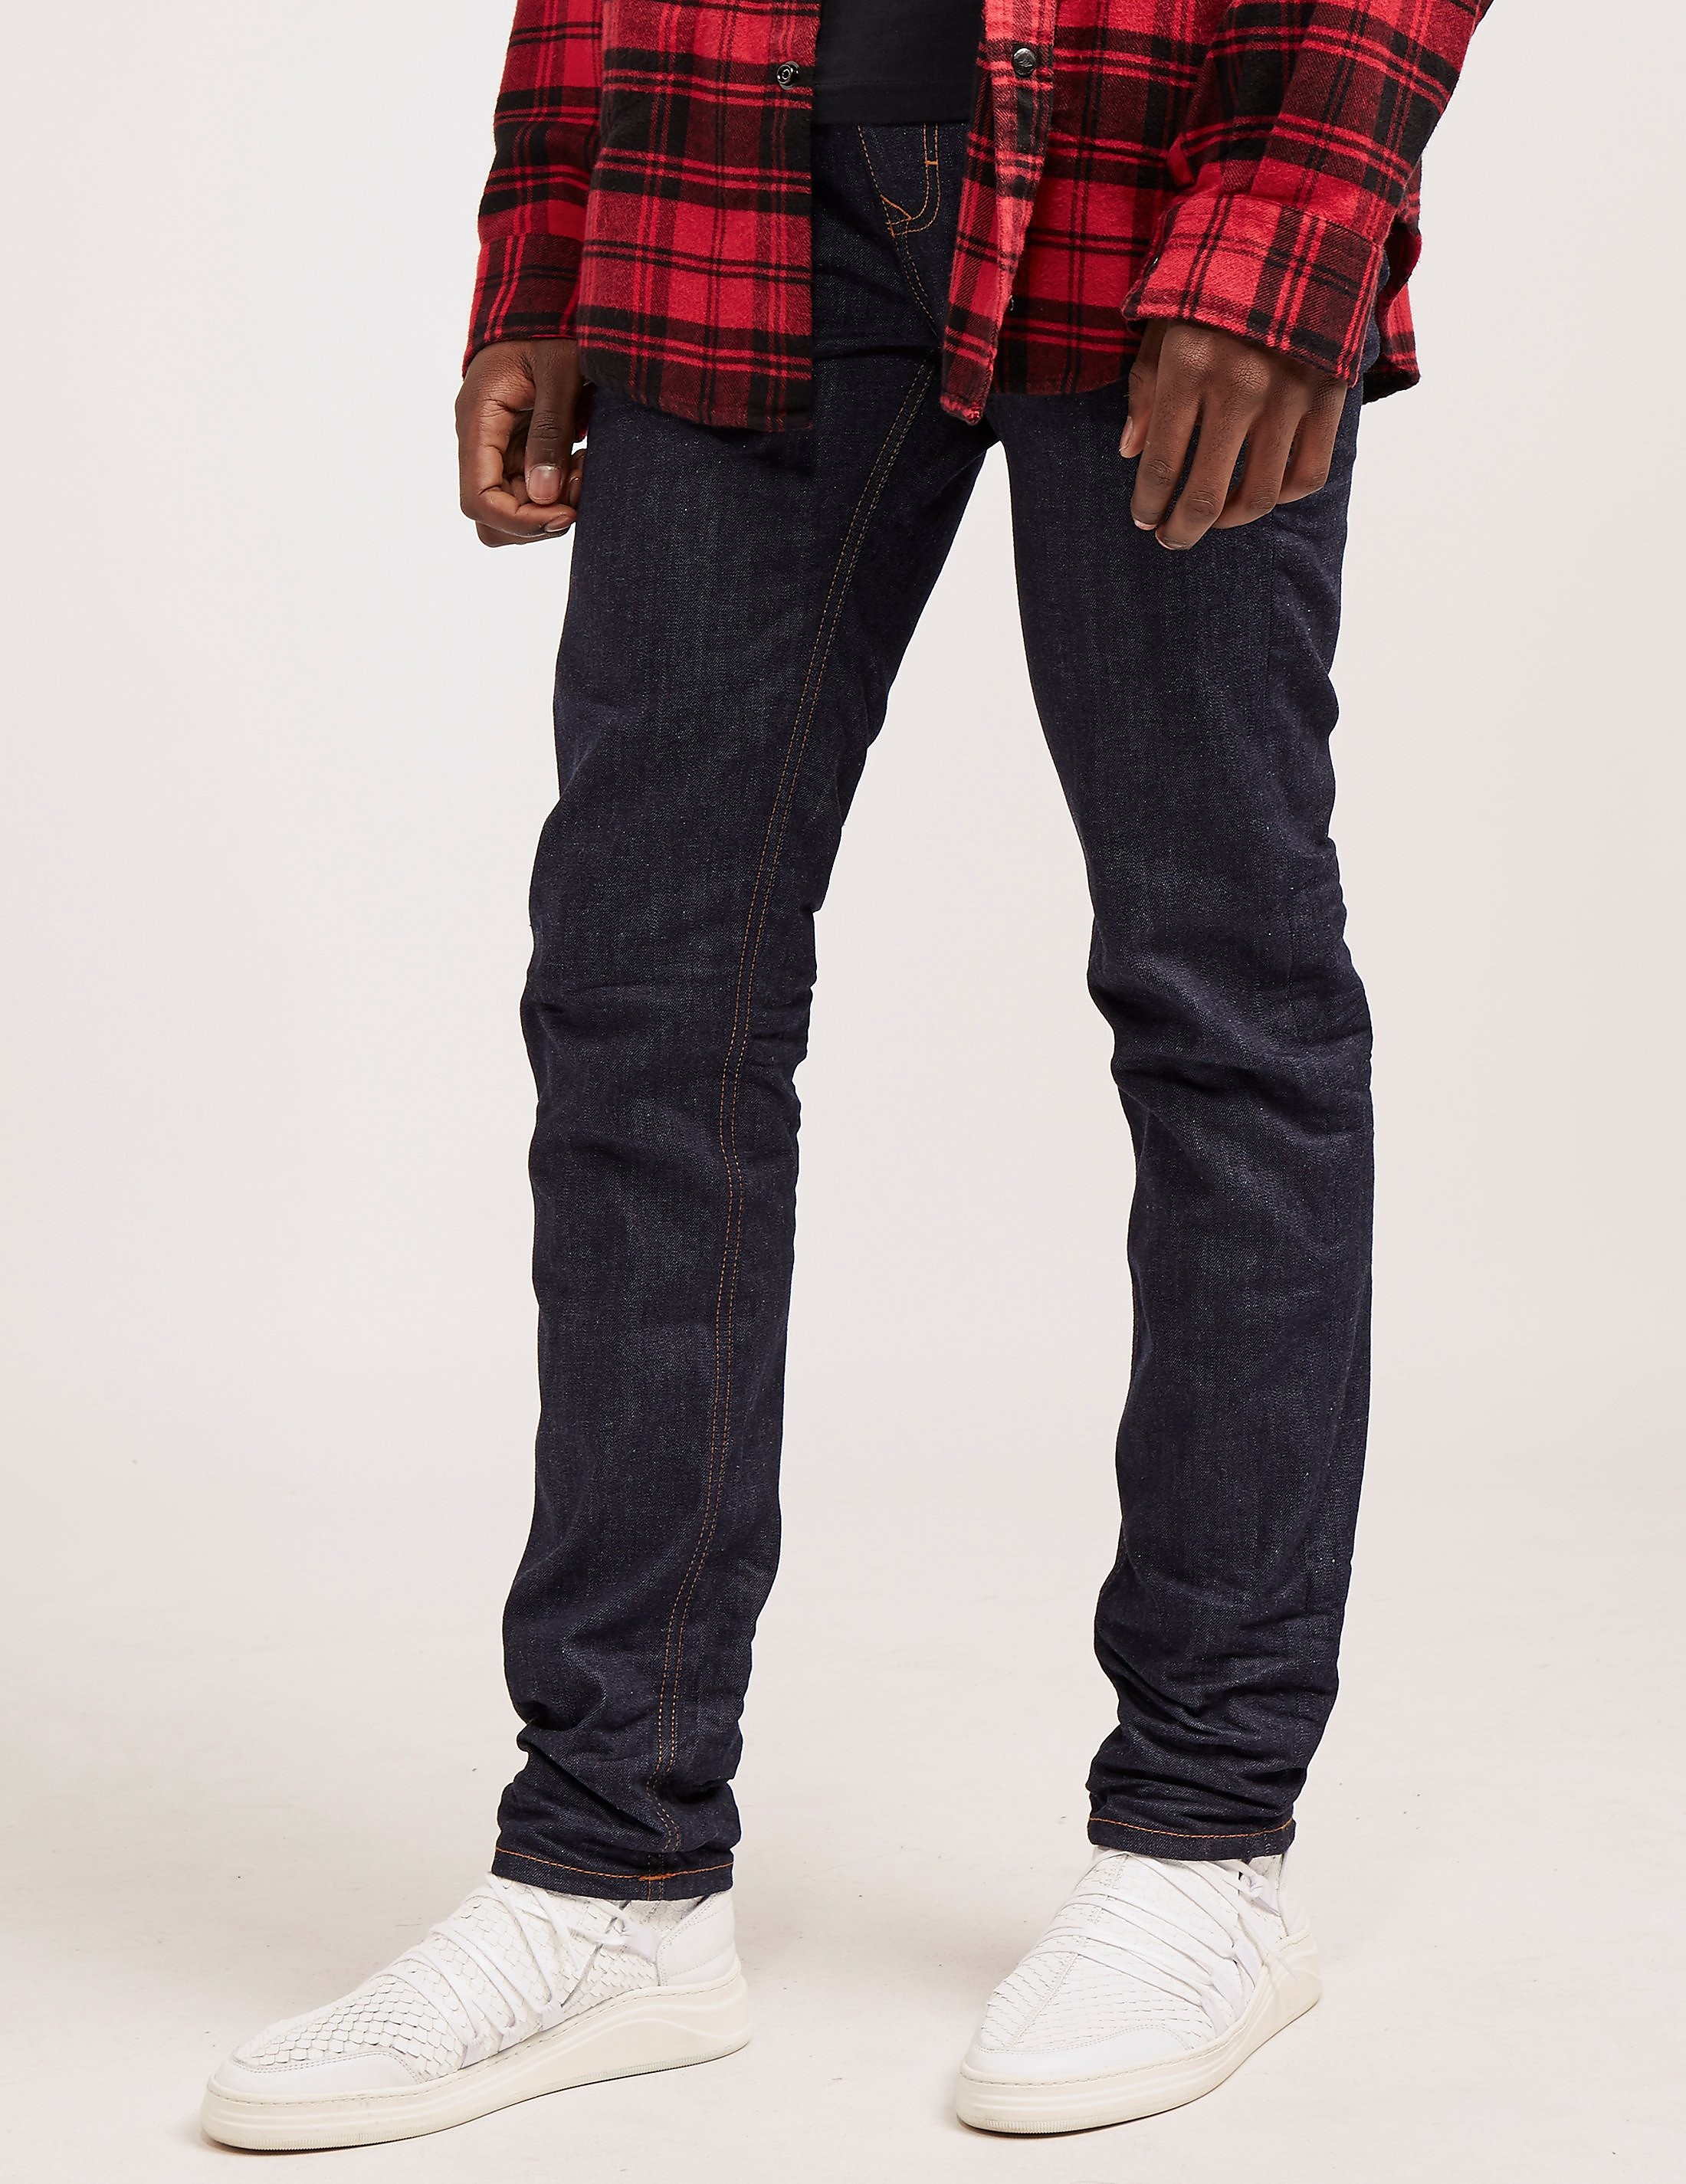 Vivienne Westwood Anglomania Orb Jeans